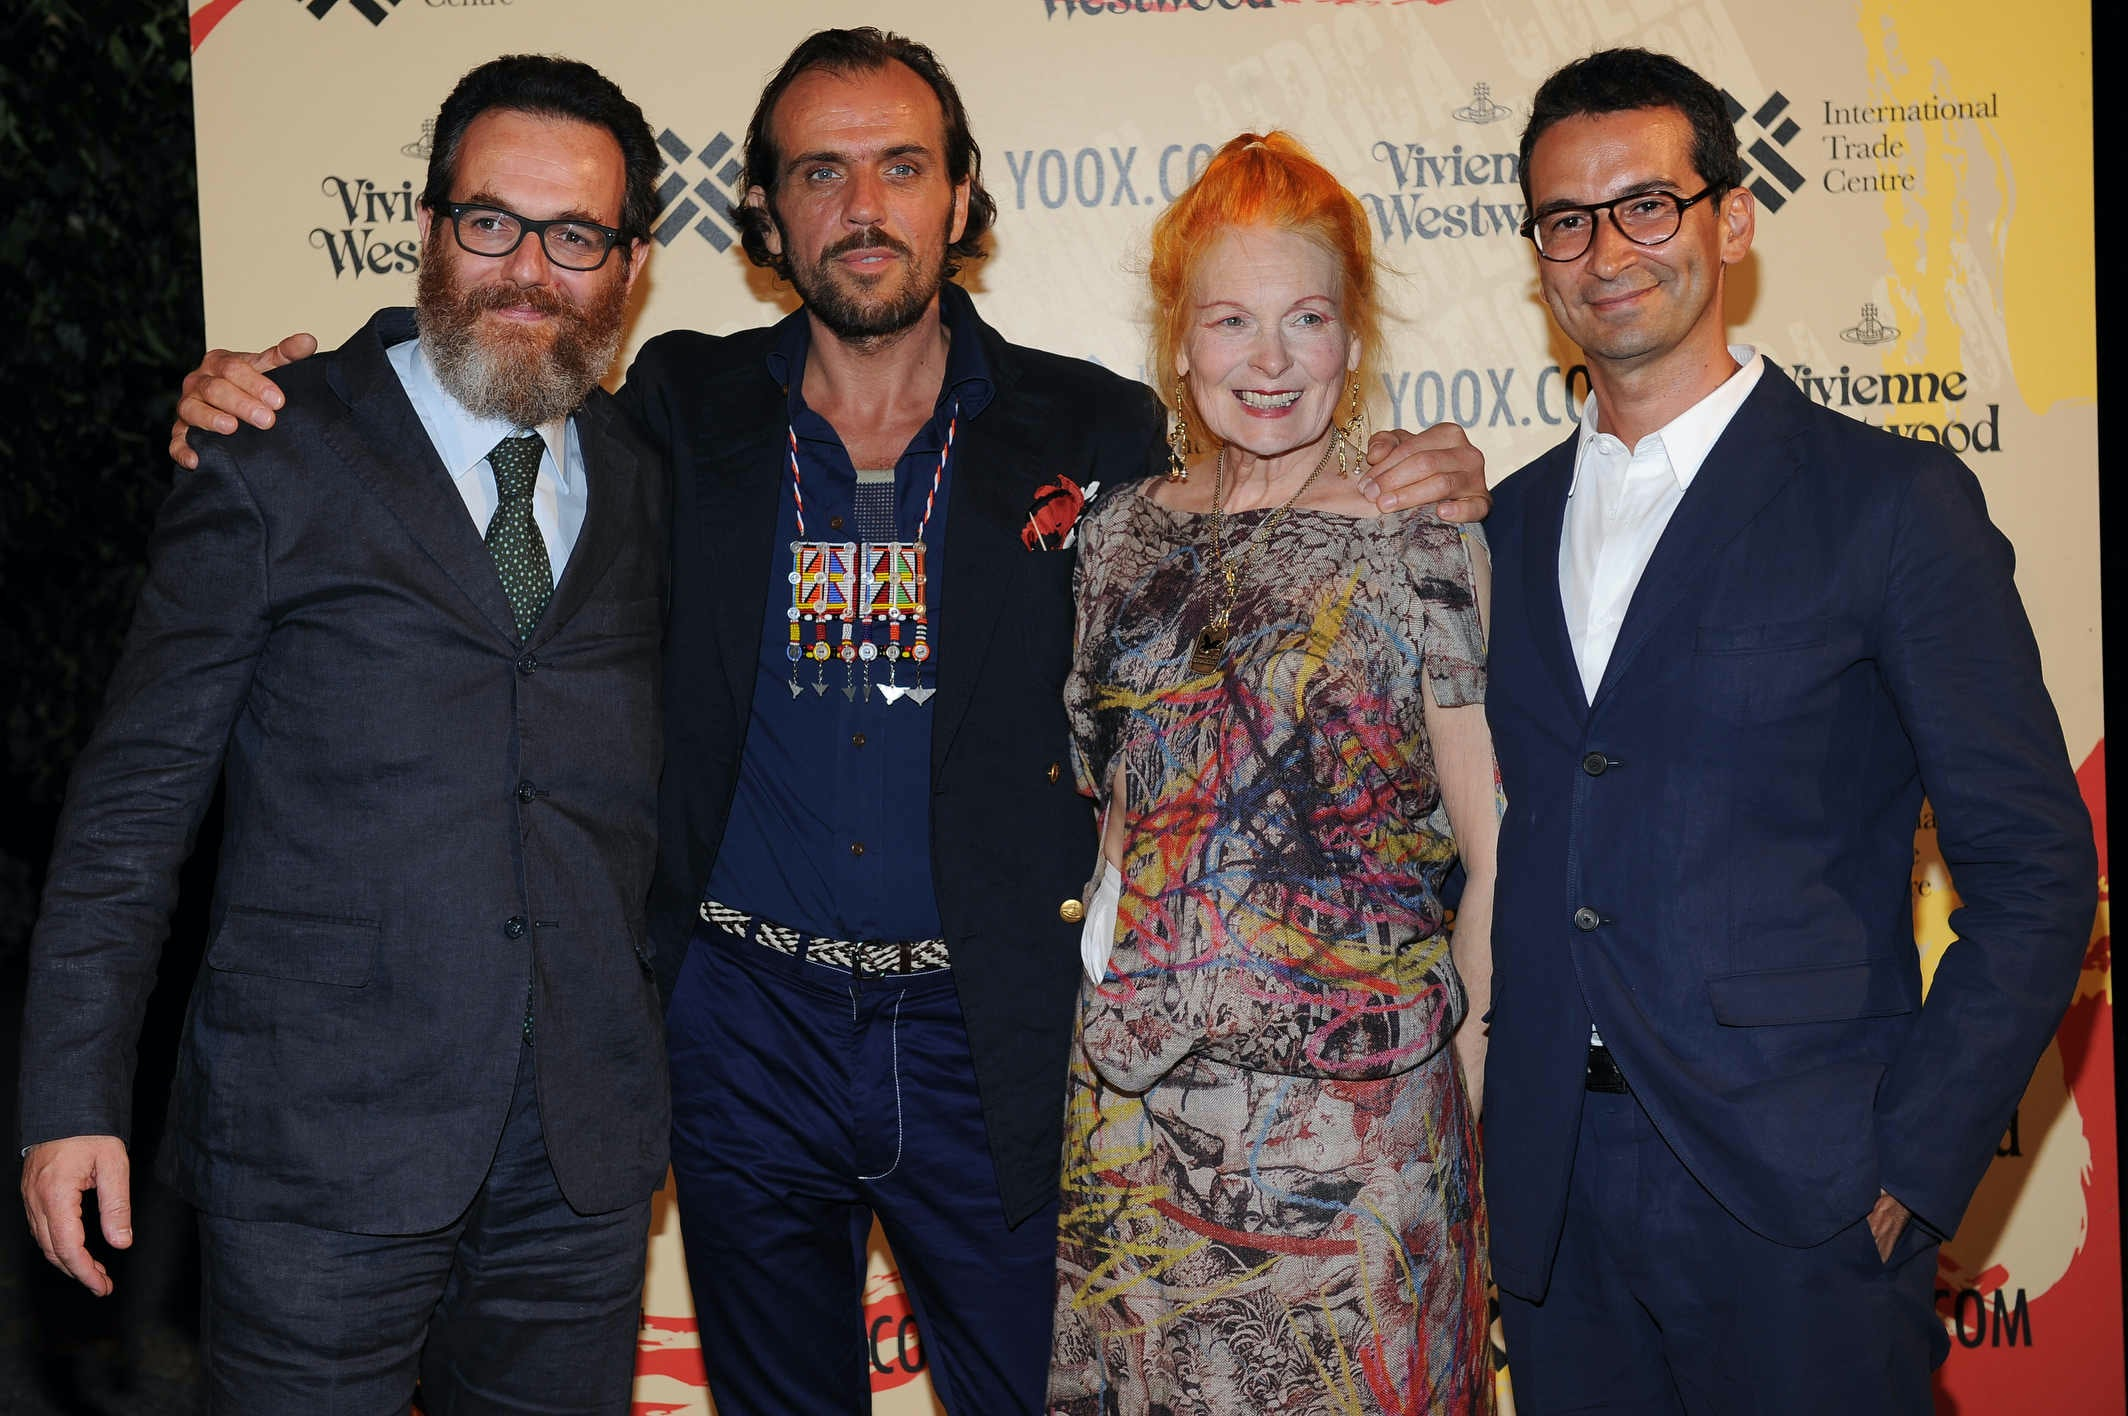 Simone Cipriani, Andreas Kronthaler, Vivienne Westwood, Federico Marchetti | Source: The Ethical Fashion Programme